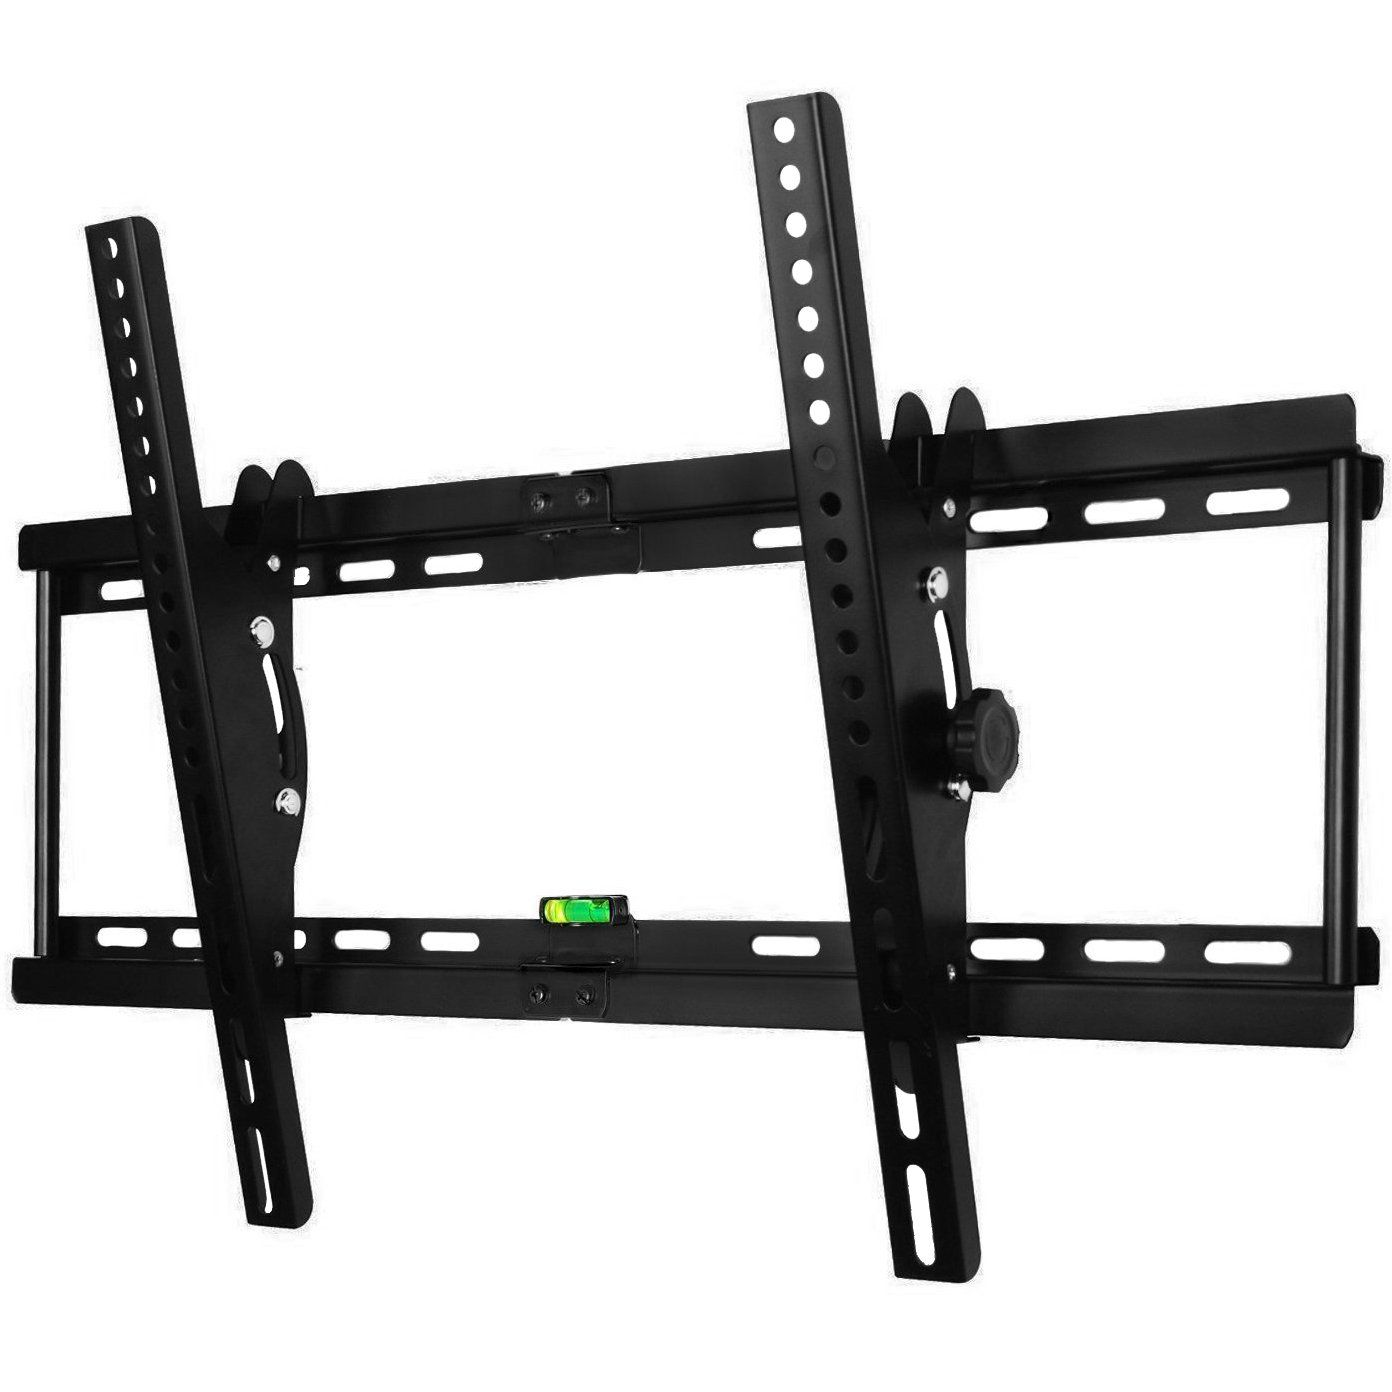 Happyjoy Low Profile Tilting Tv Wall Mount Bracket For 30 70 Inch Samsung Lg Sony Philips Etc Lcd L Tilting Tv Wall Mount Tv Wall Mount Bracket Wall Mounted Tv